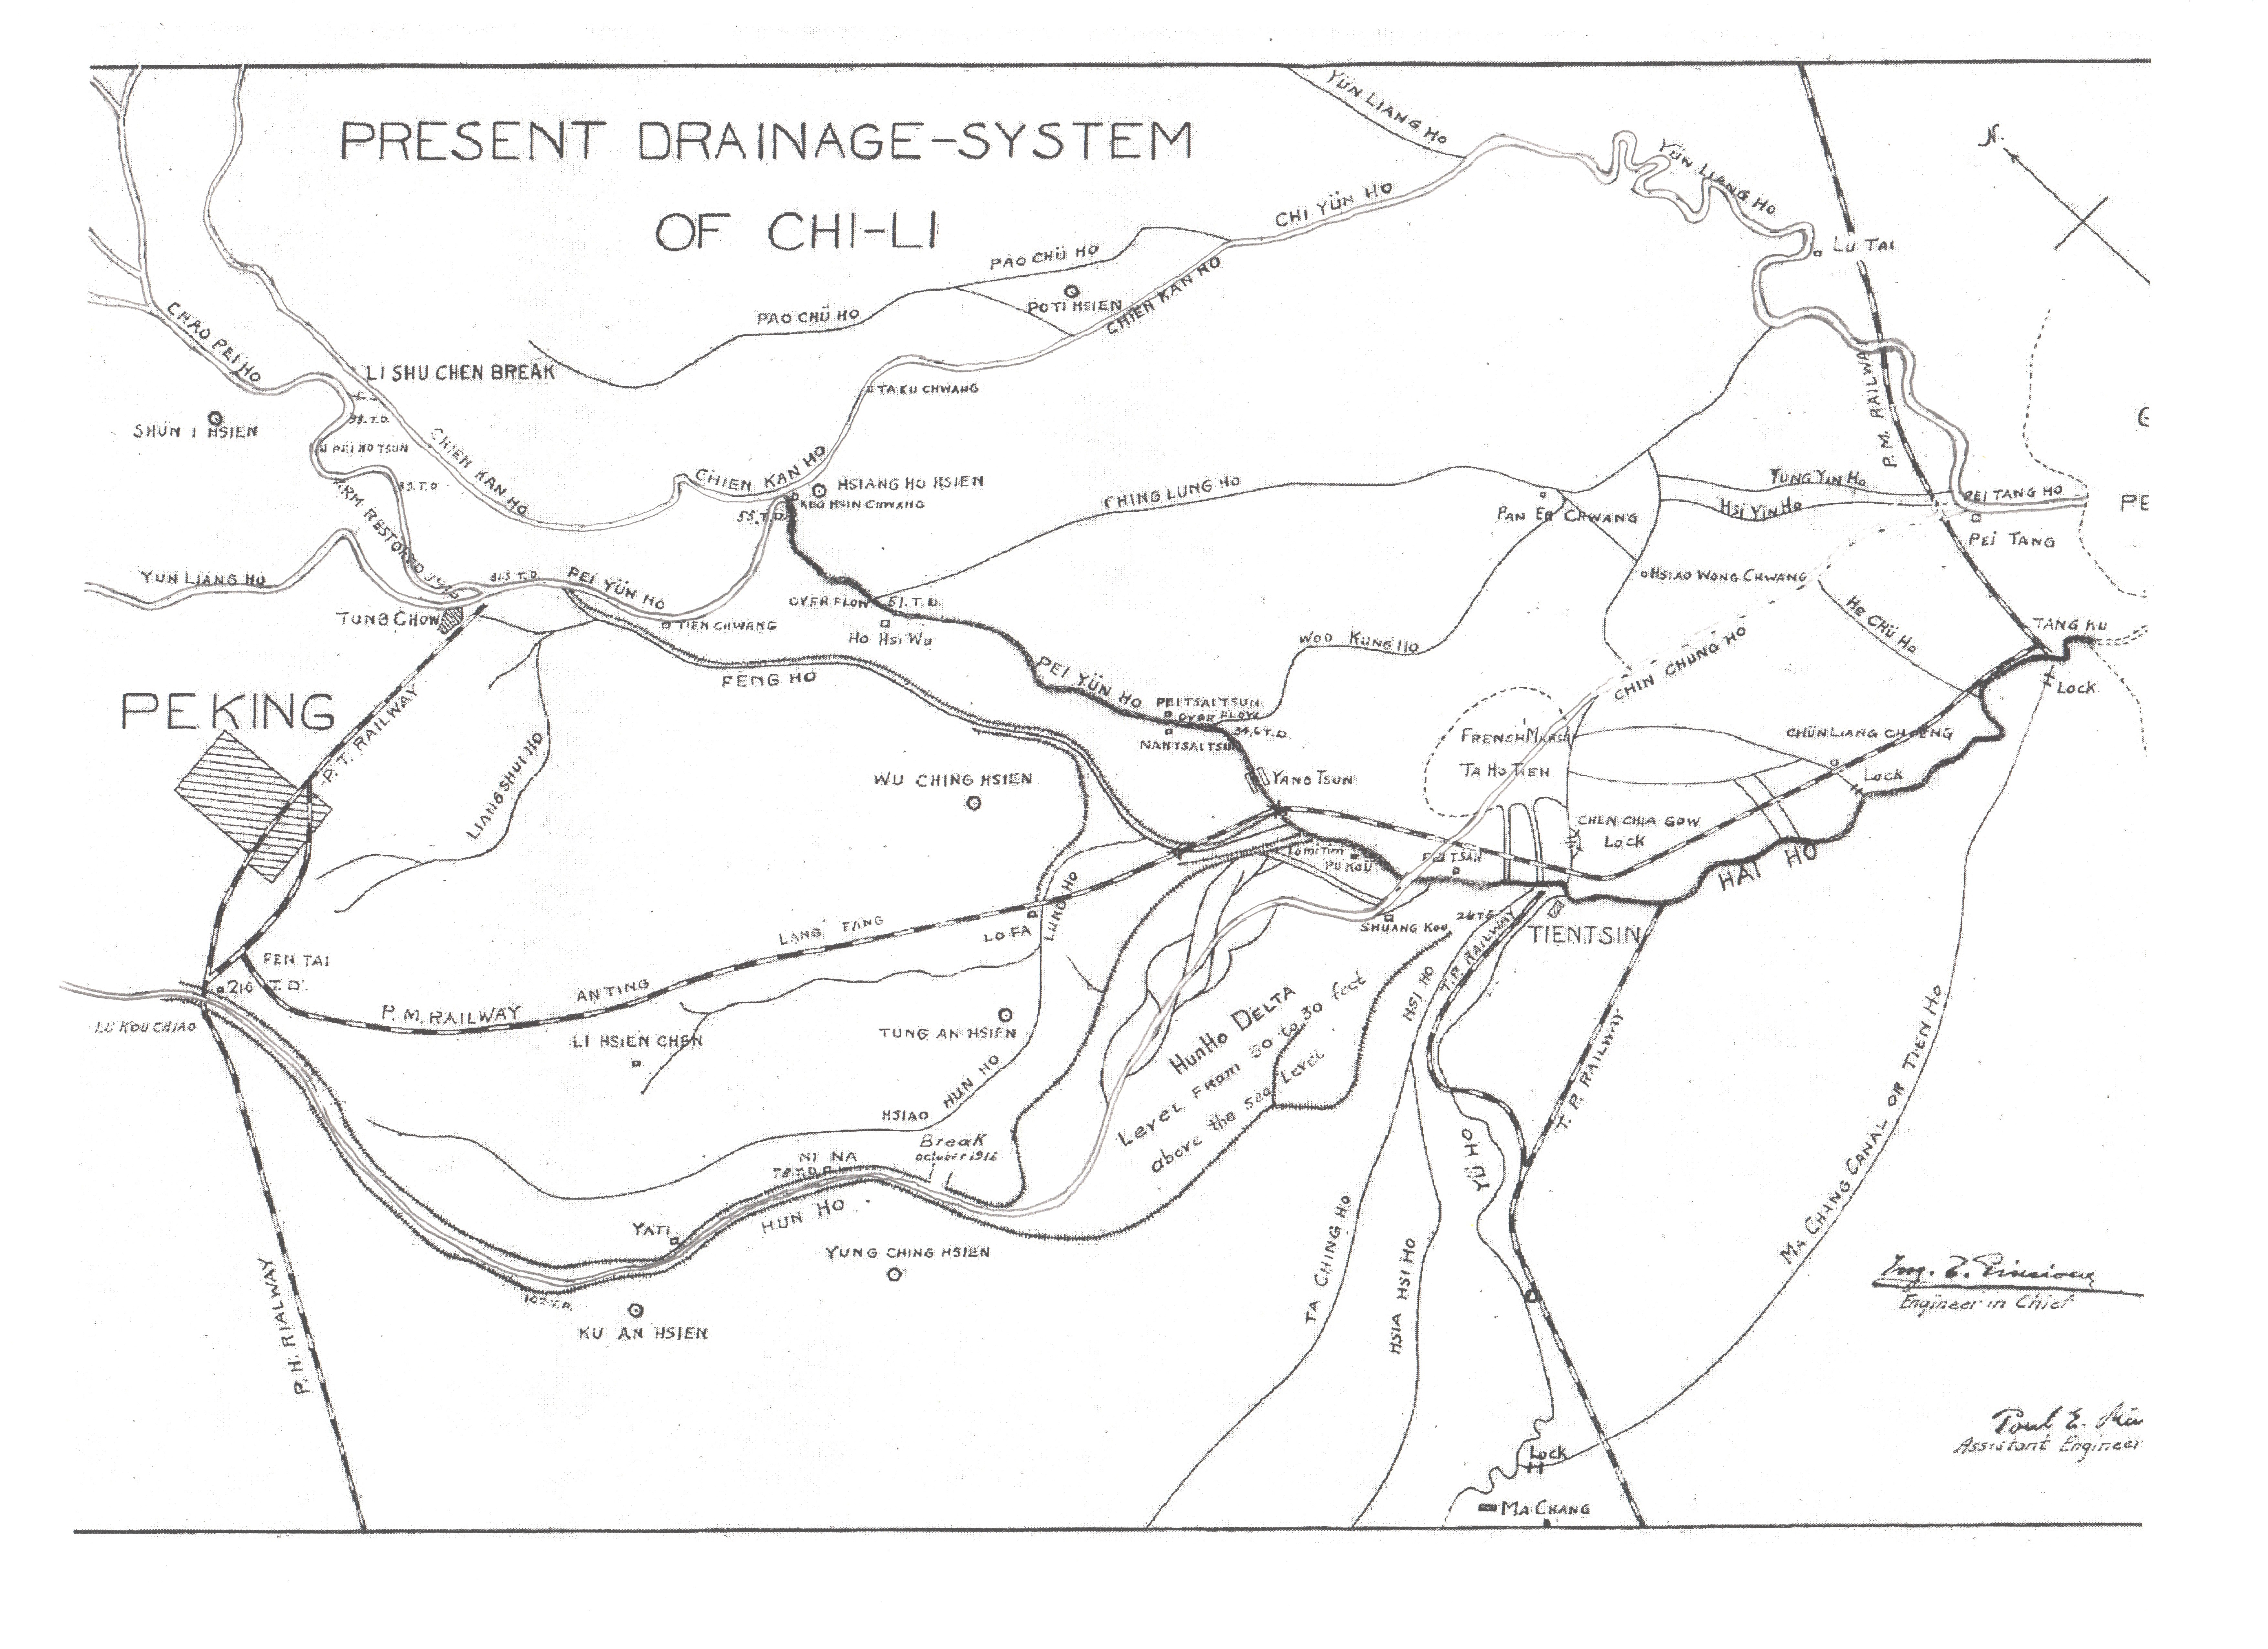 Figure 6: The short dotted line between the Jiangan River (Chien Kan Ho) and the Chaobai River (Chao Pei Ho) to the upper left of the map shows the location of the 1912 Lisuizhen break (Li Shu Chen Break) and the detour to the Chaobai River this break created.